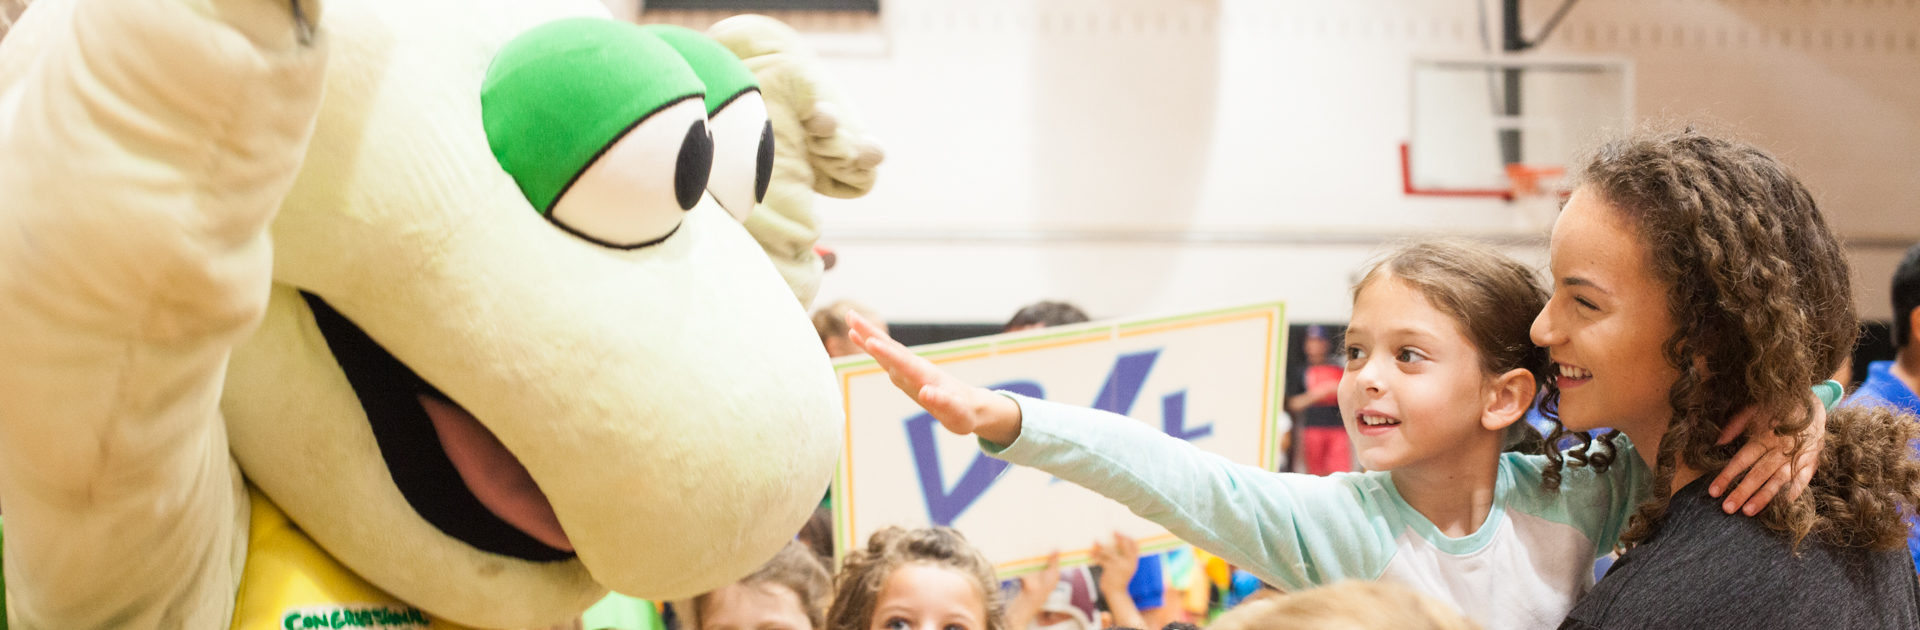 young girl reaching out and touching the congressional camp turtle mascot